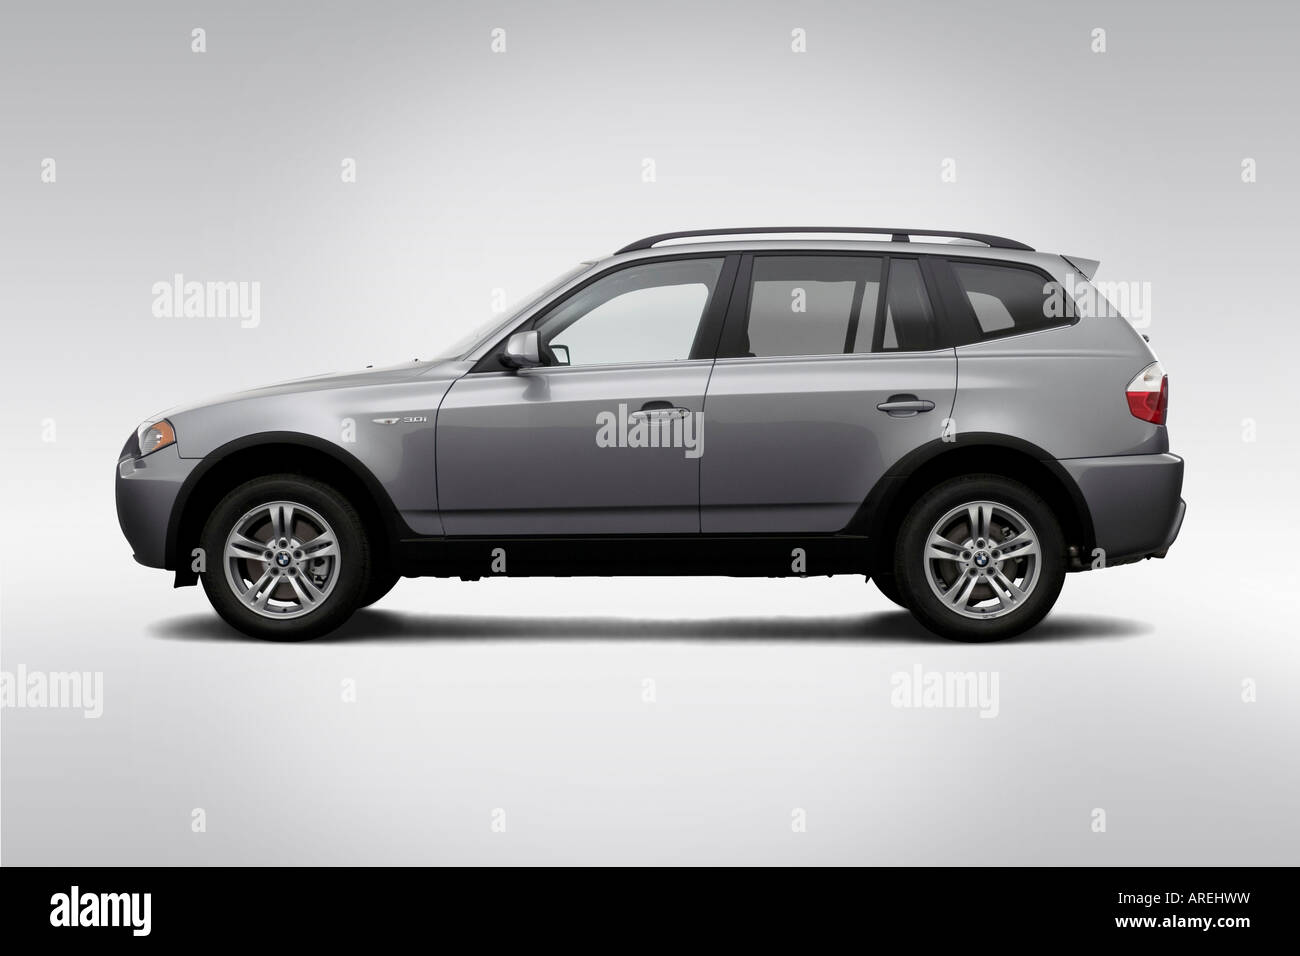 2006 BMW X3 3.0i in Silver - Drivers Side Profile Stock Photo ...